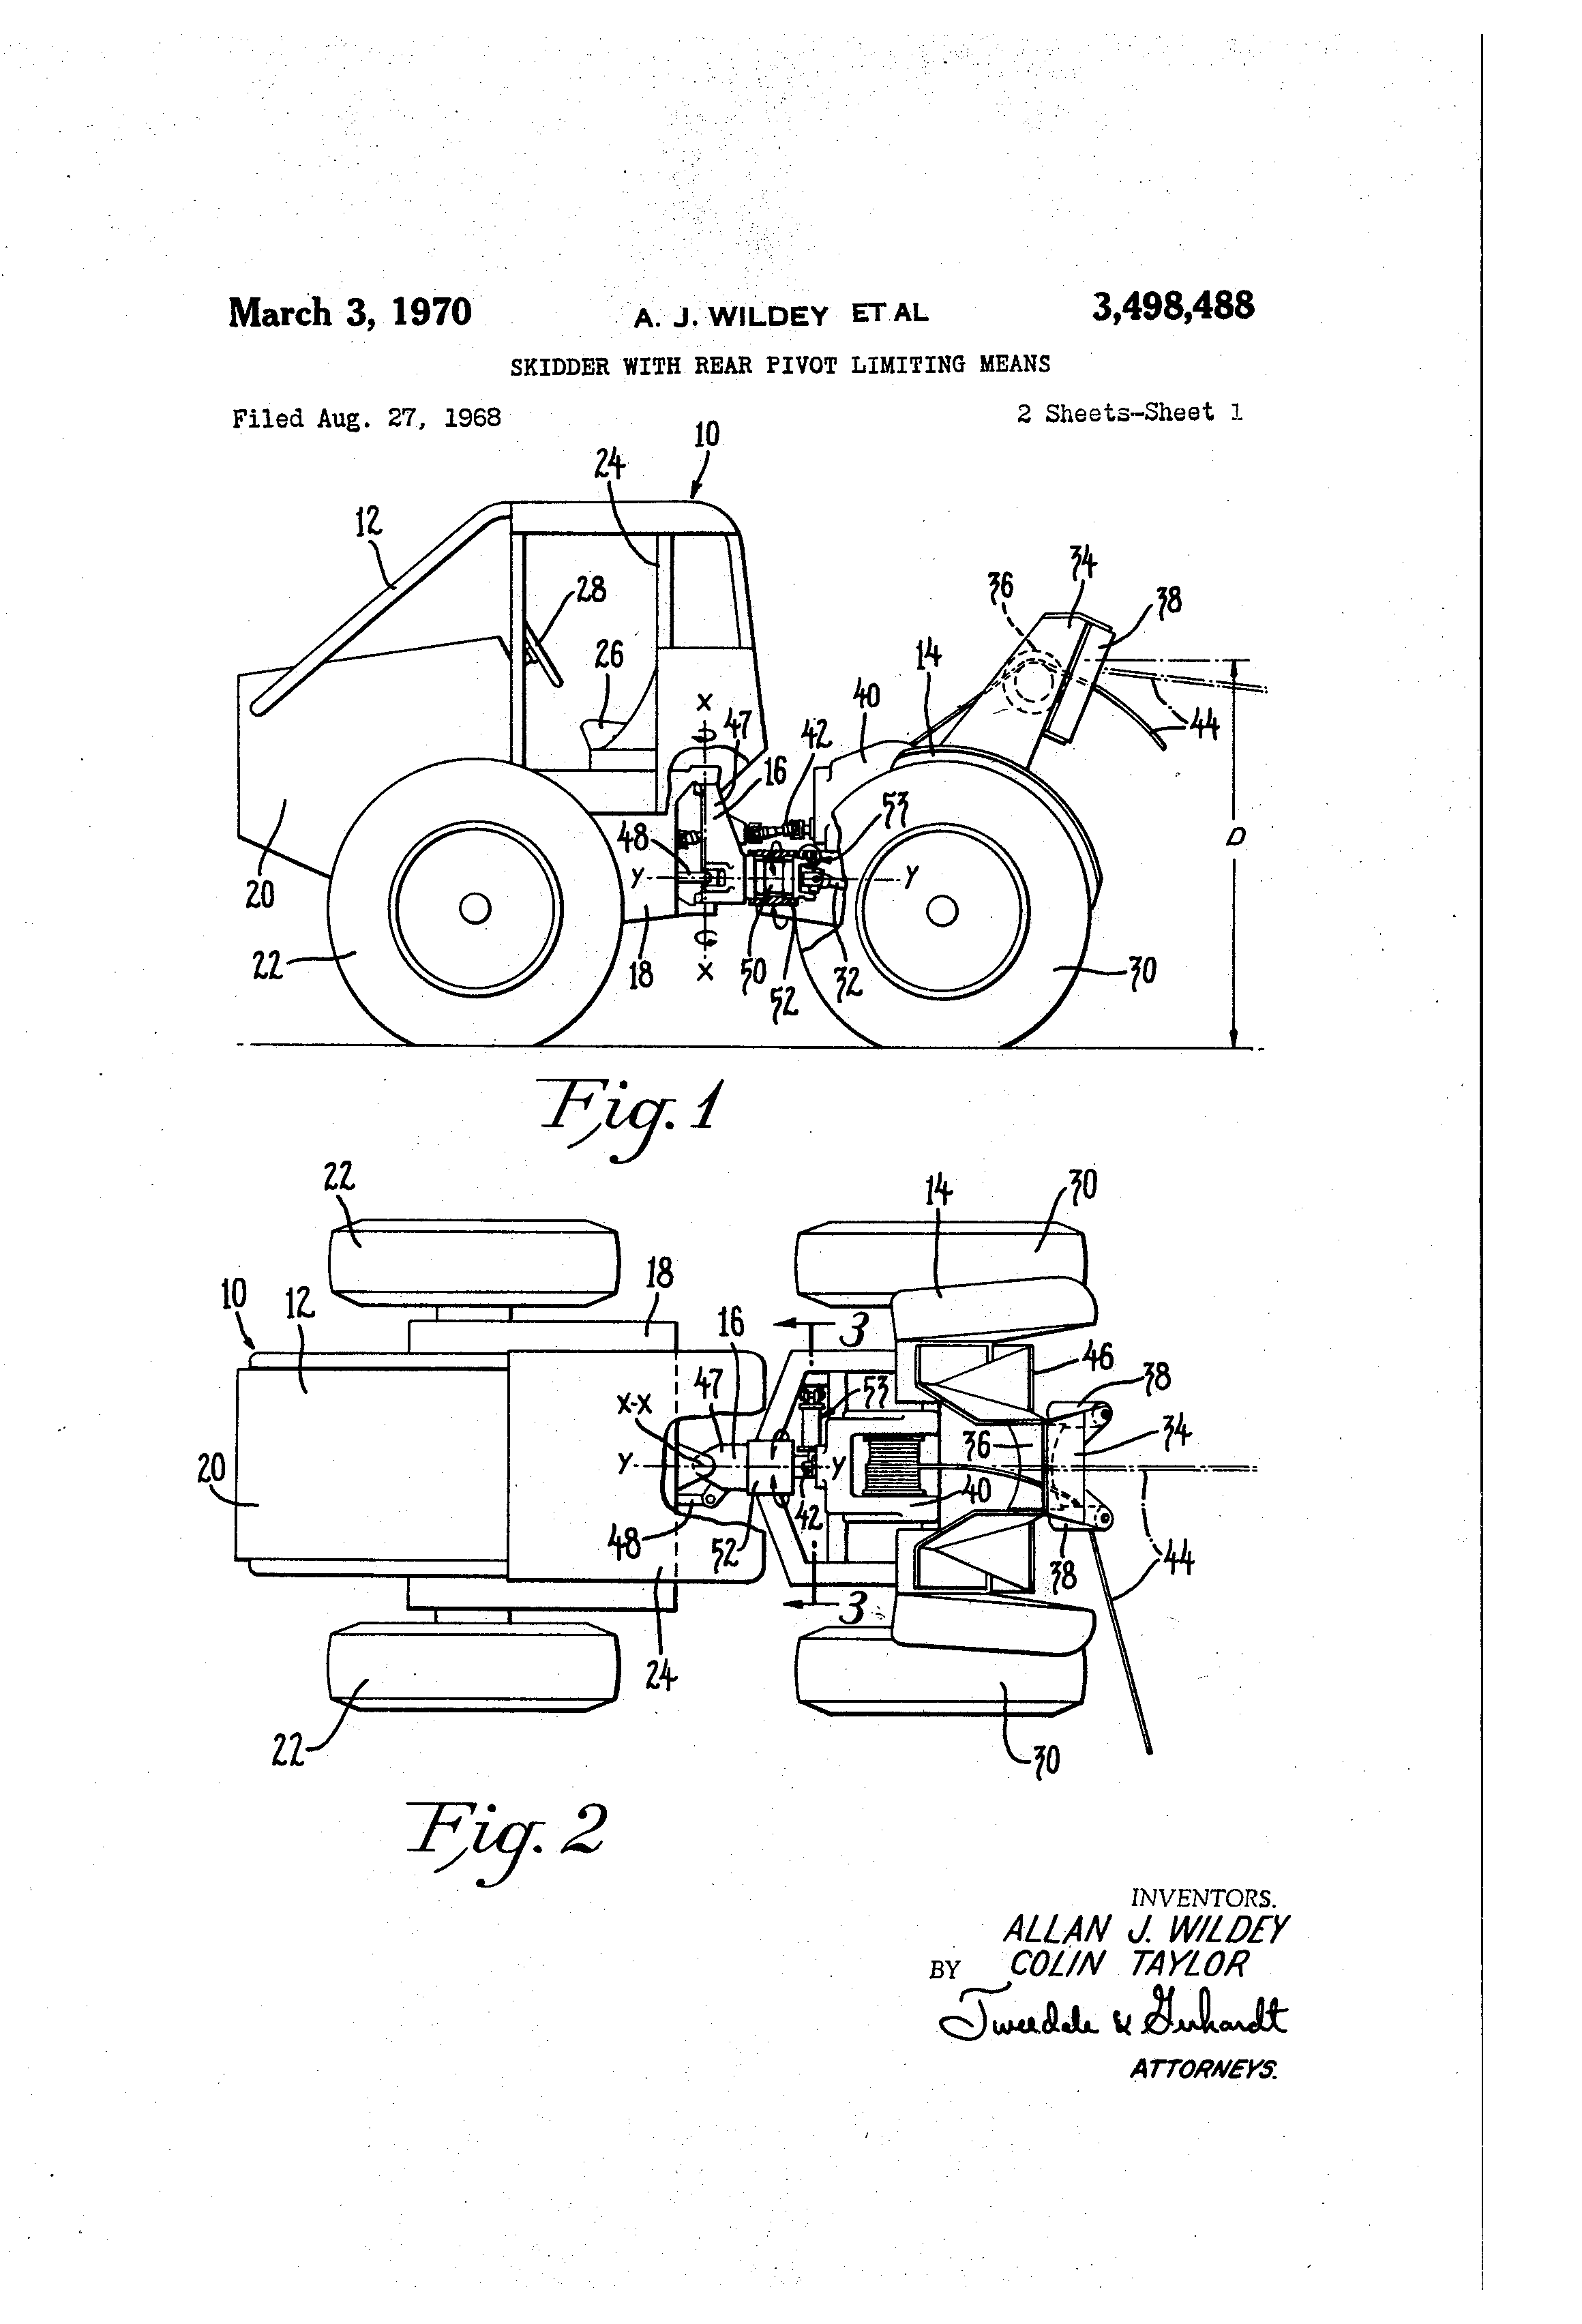 patente us3498488 - skidder with rear pivot limiting means